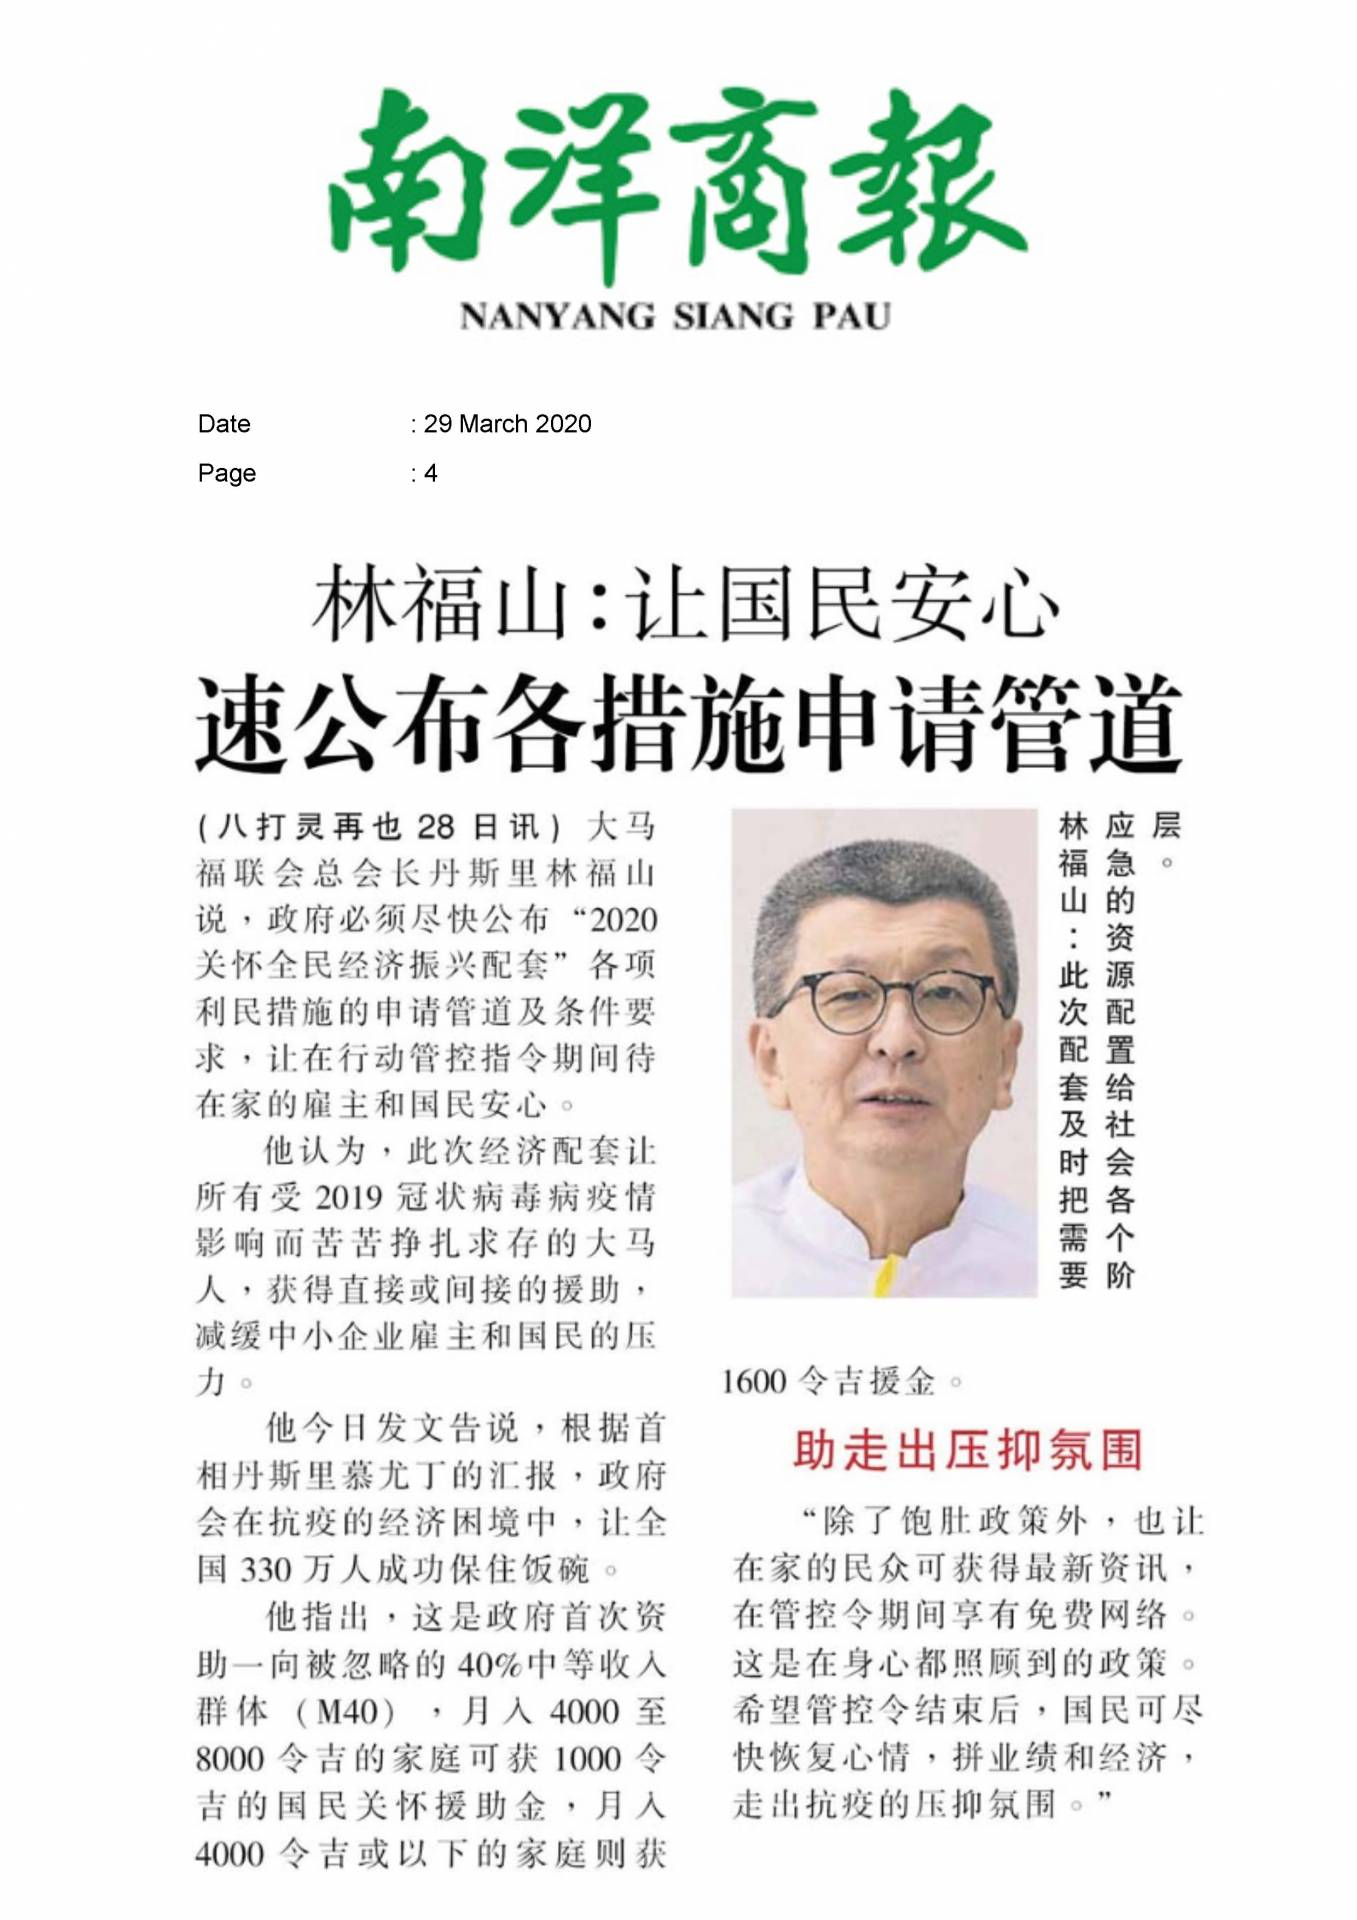 2020.03.29 Nanyang - Lim Hock San urges govt to announce application channels for measures quickly